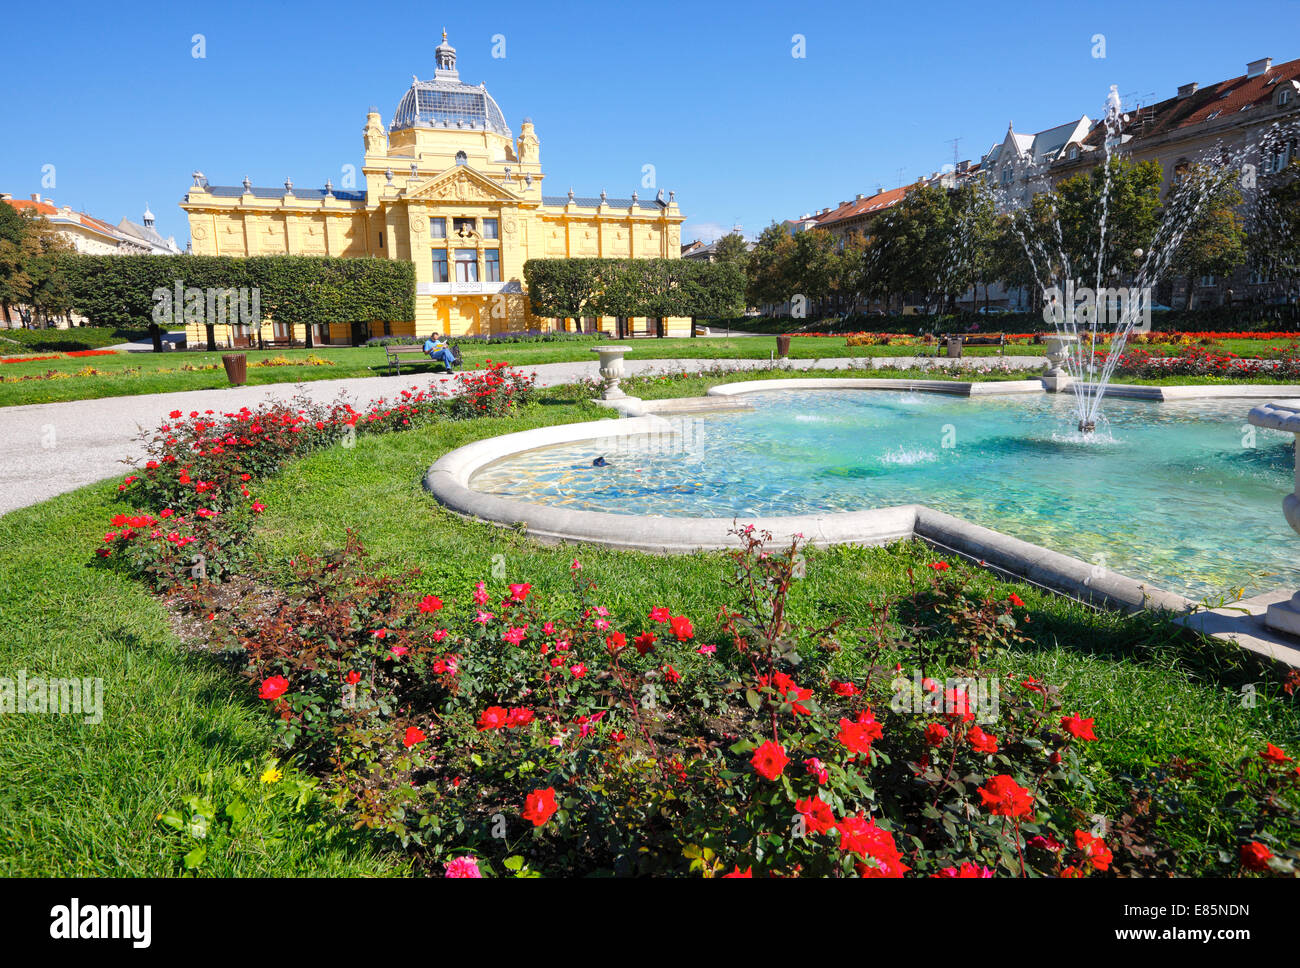 Zagreb art pavilion, exhibition hall with fountain - Stock Image